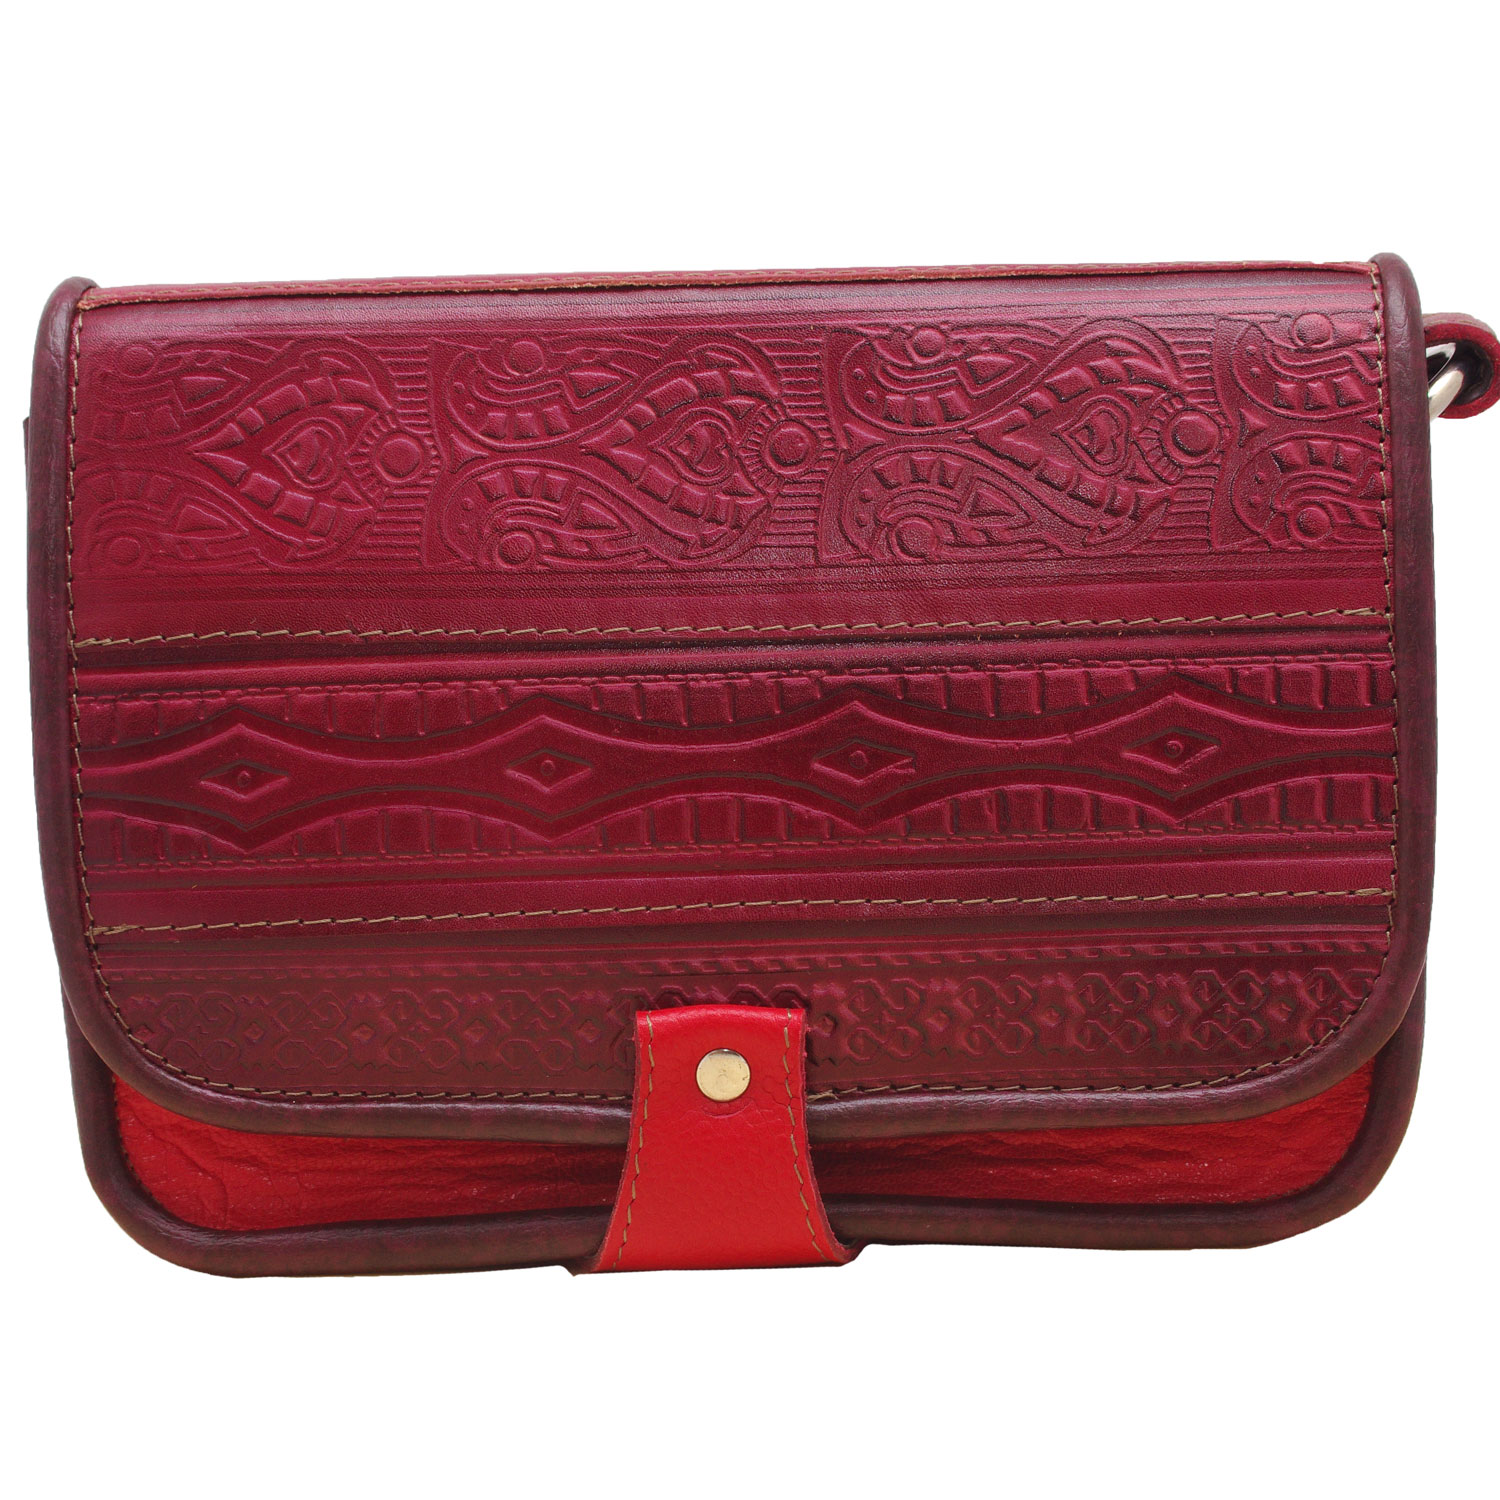 Red woman genuine leather bag with abstract popular motifs embossed design